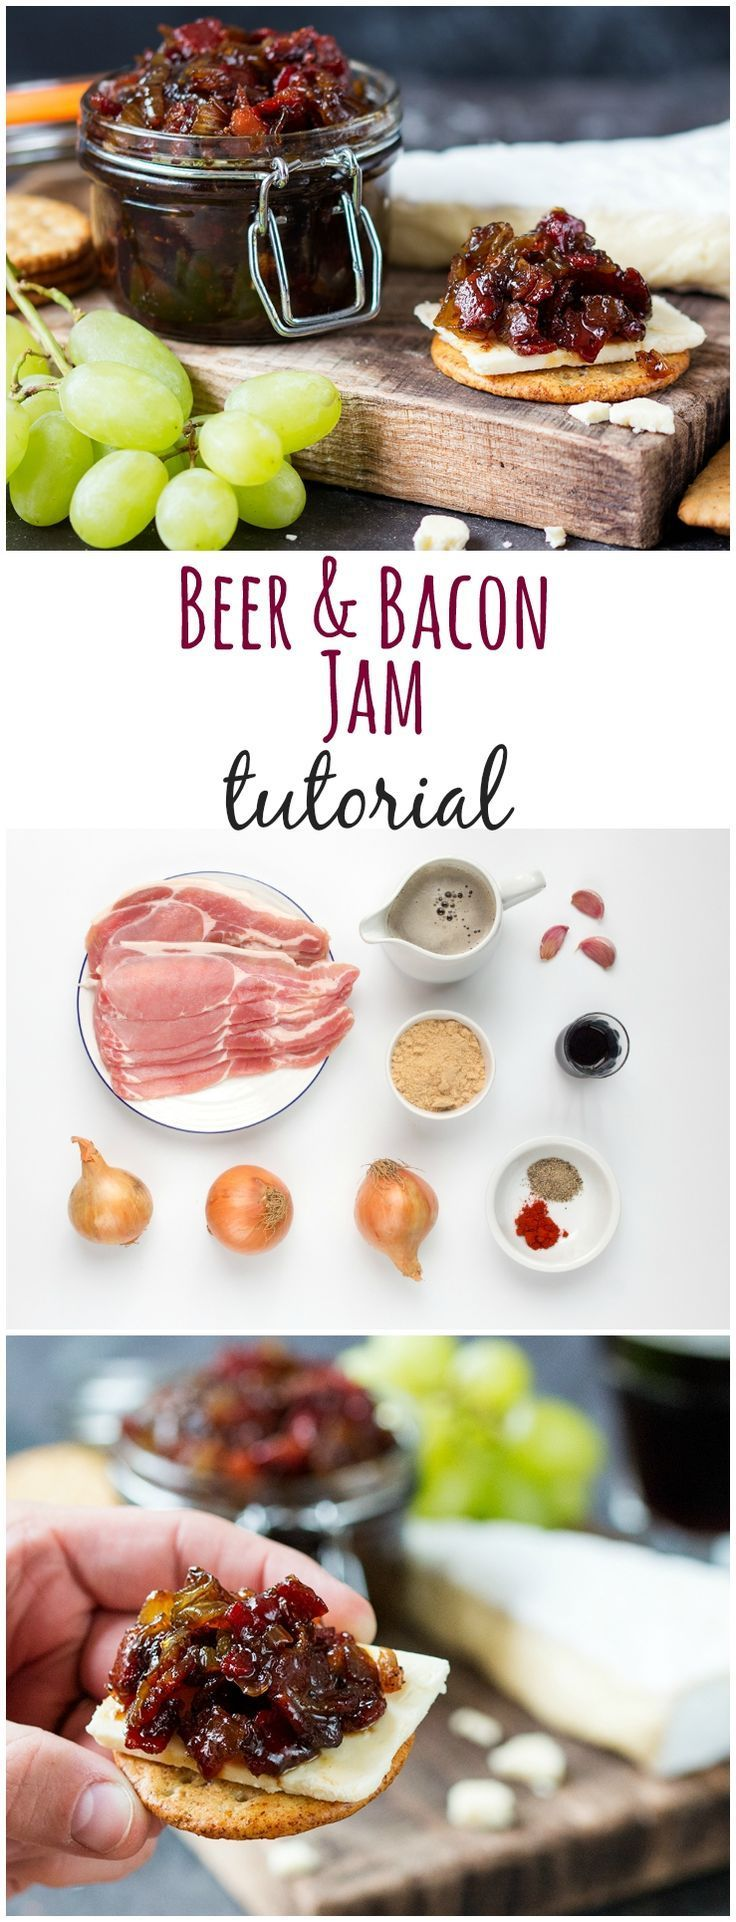 Bacon and Beer Jam - You'll want to spread it on everything!